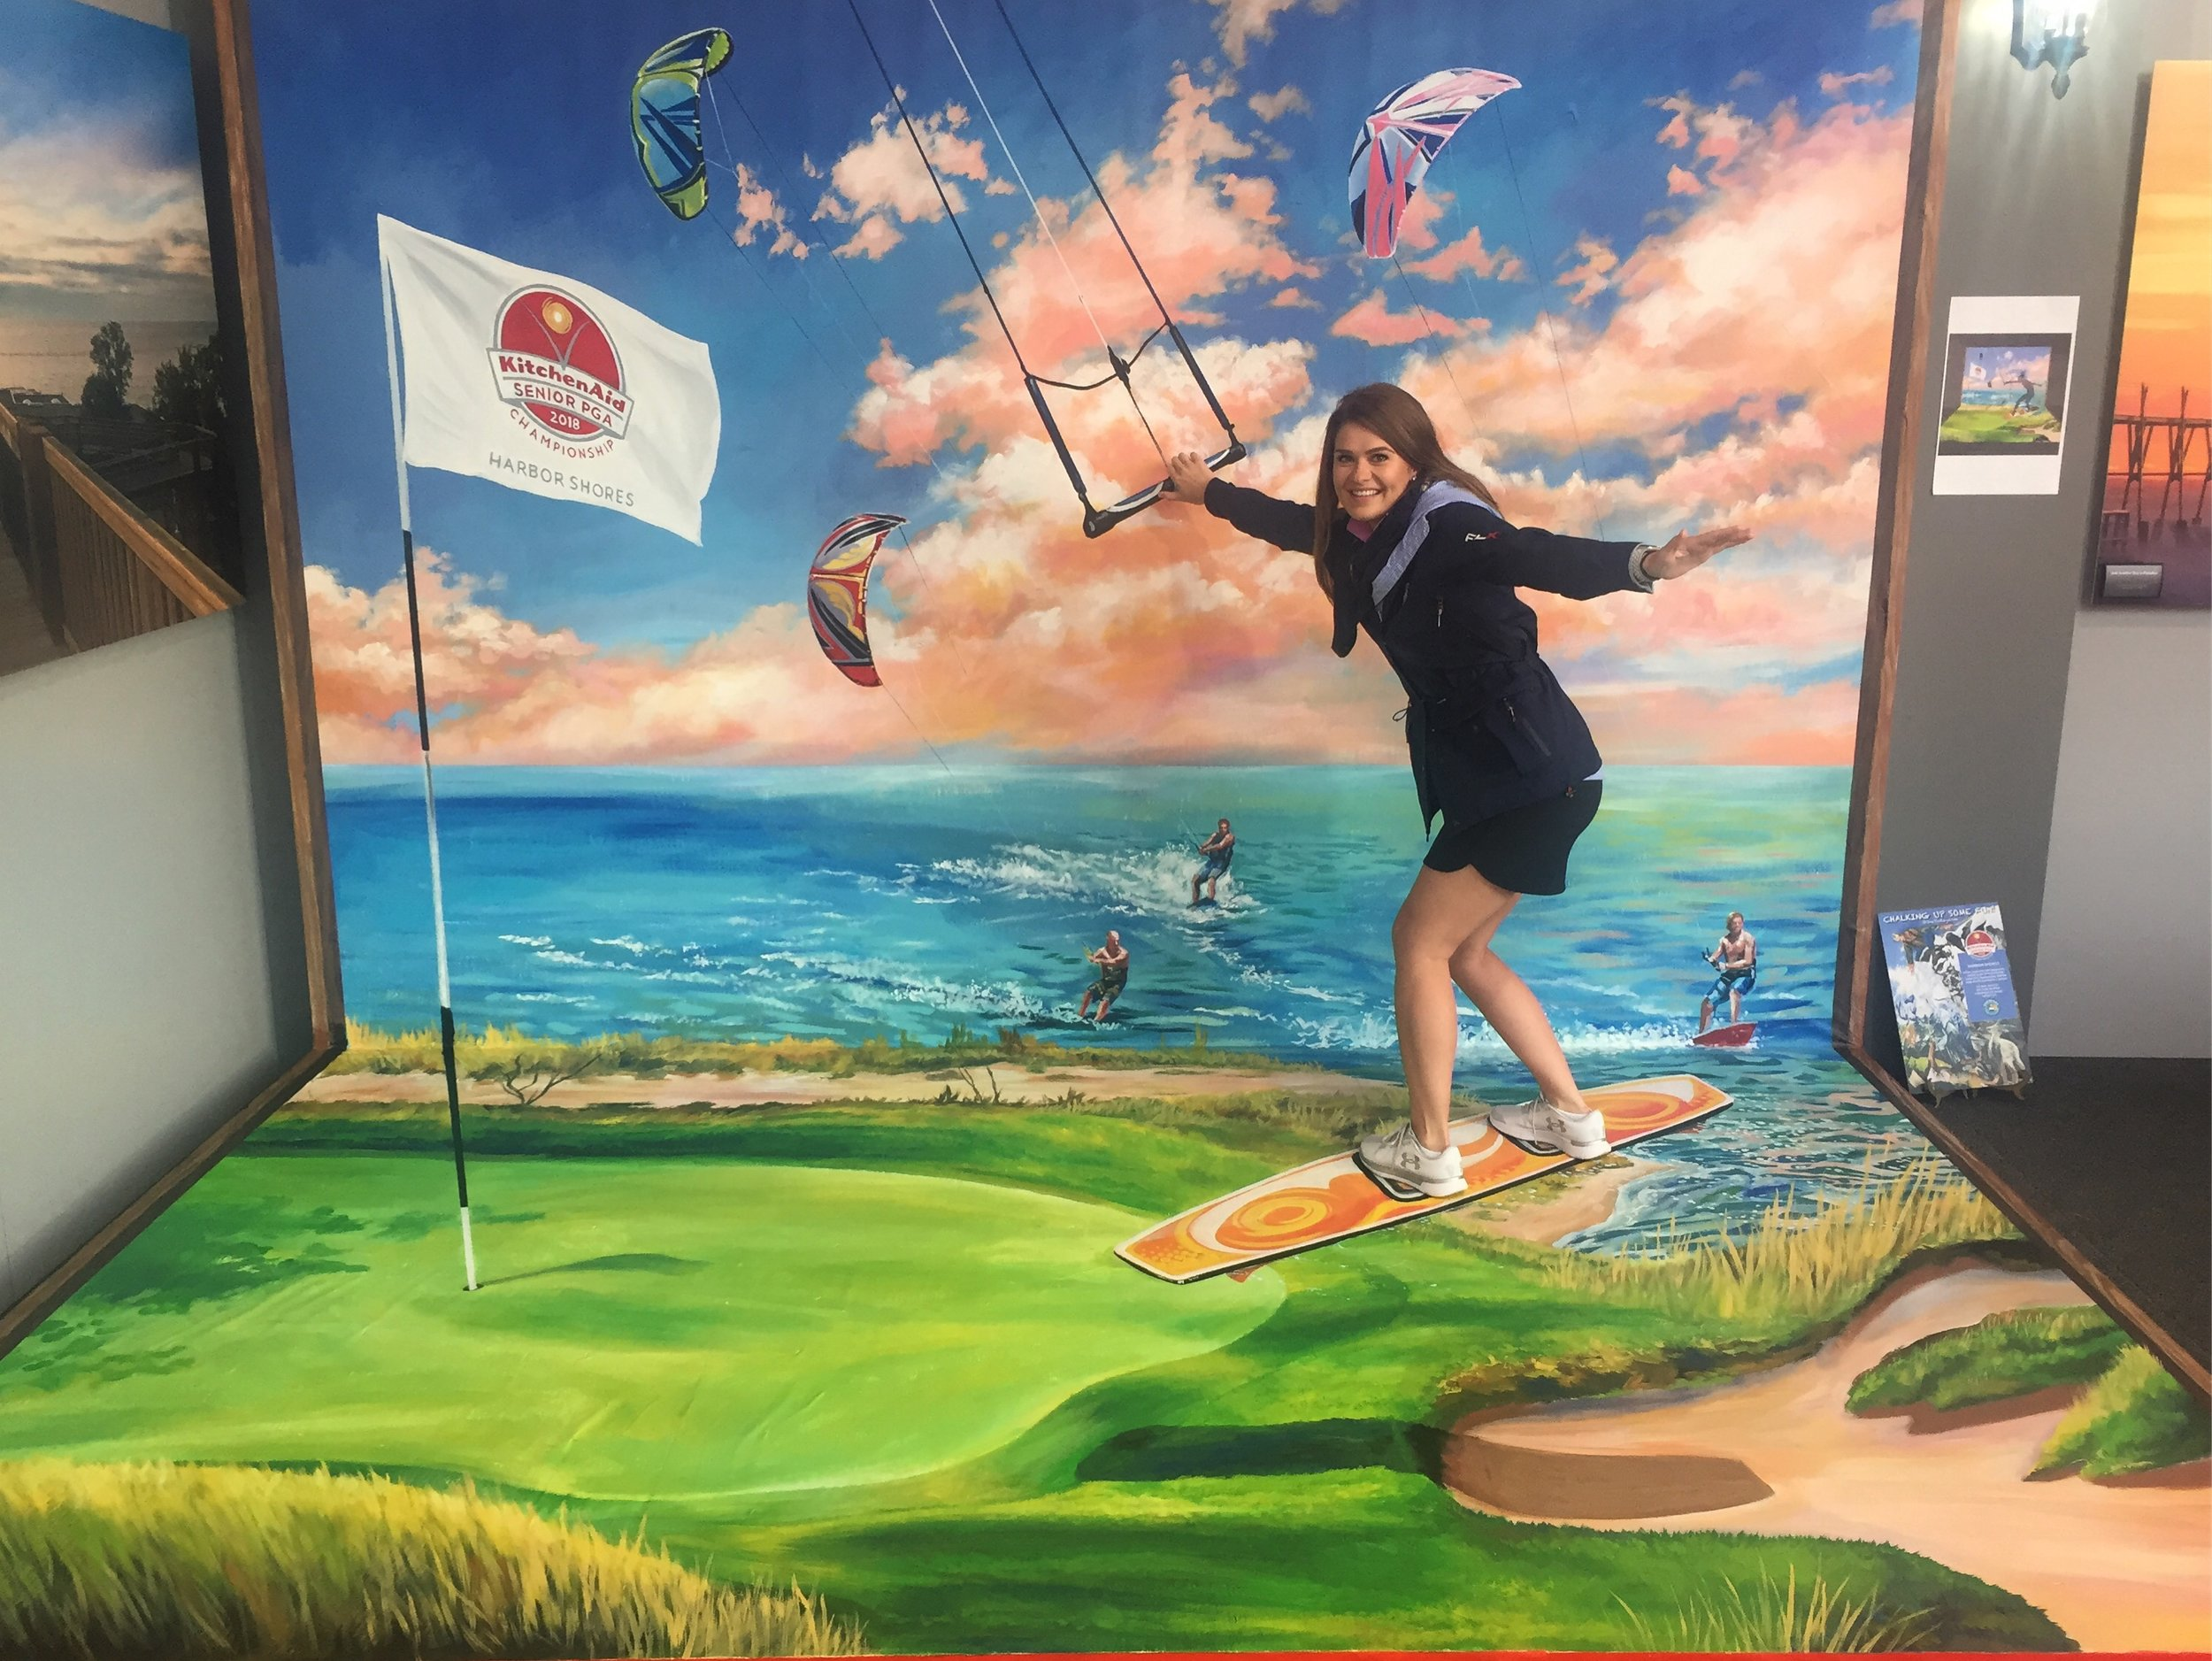 Guests get to ride a 3D kite board on the 3D artwork at the KitchenAid Senior PGA Championship.